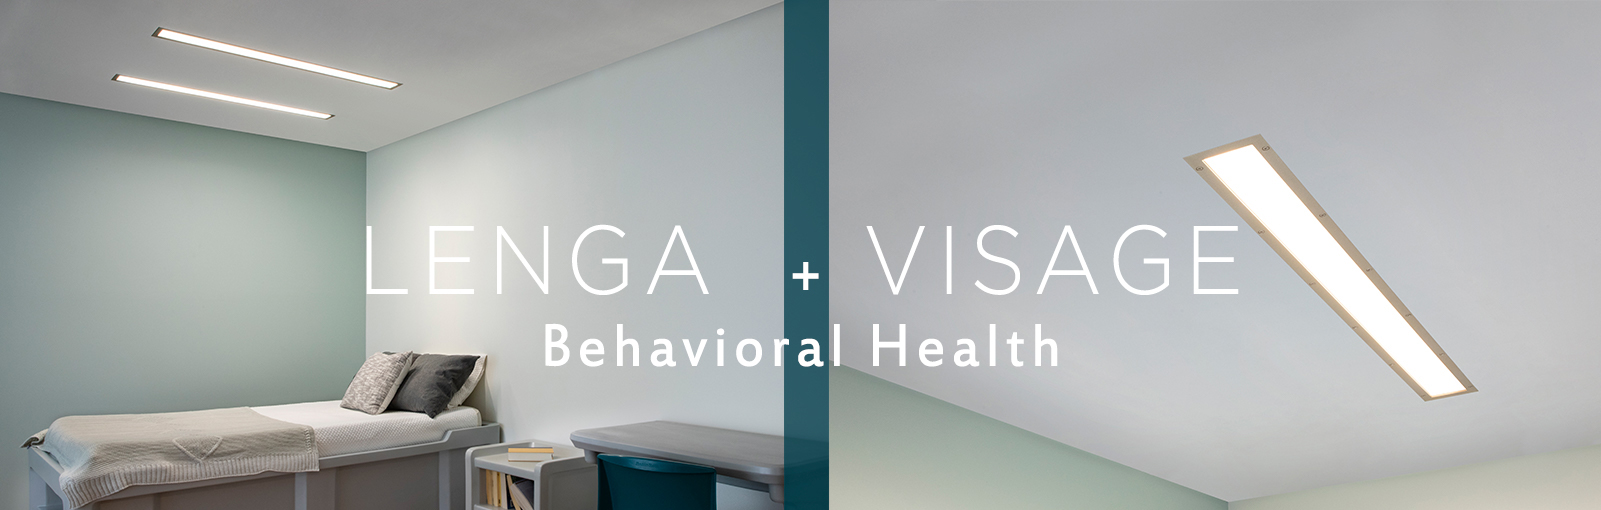 New Lenga and Visage behavioral health ceiling luminaires